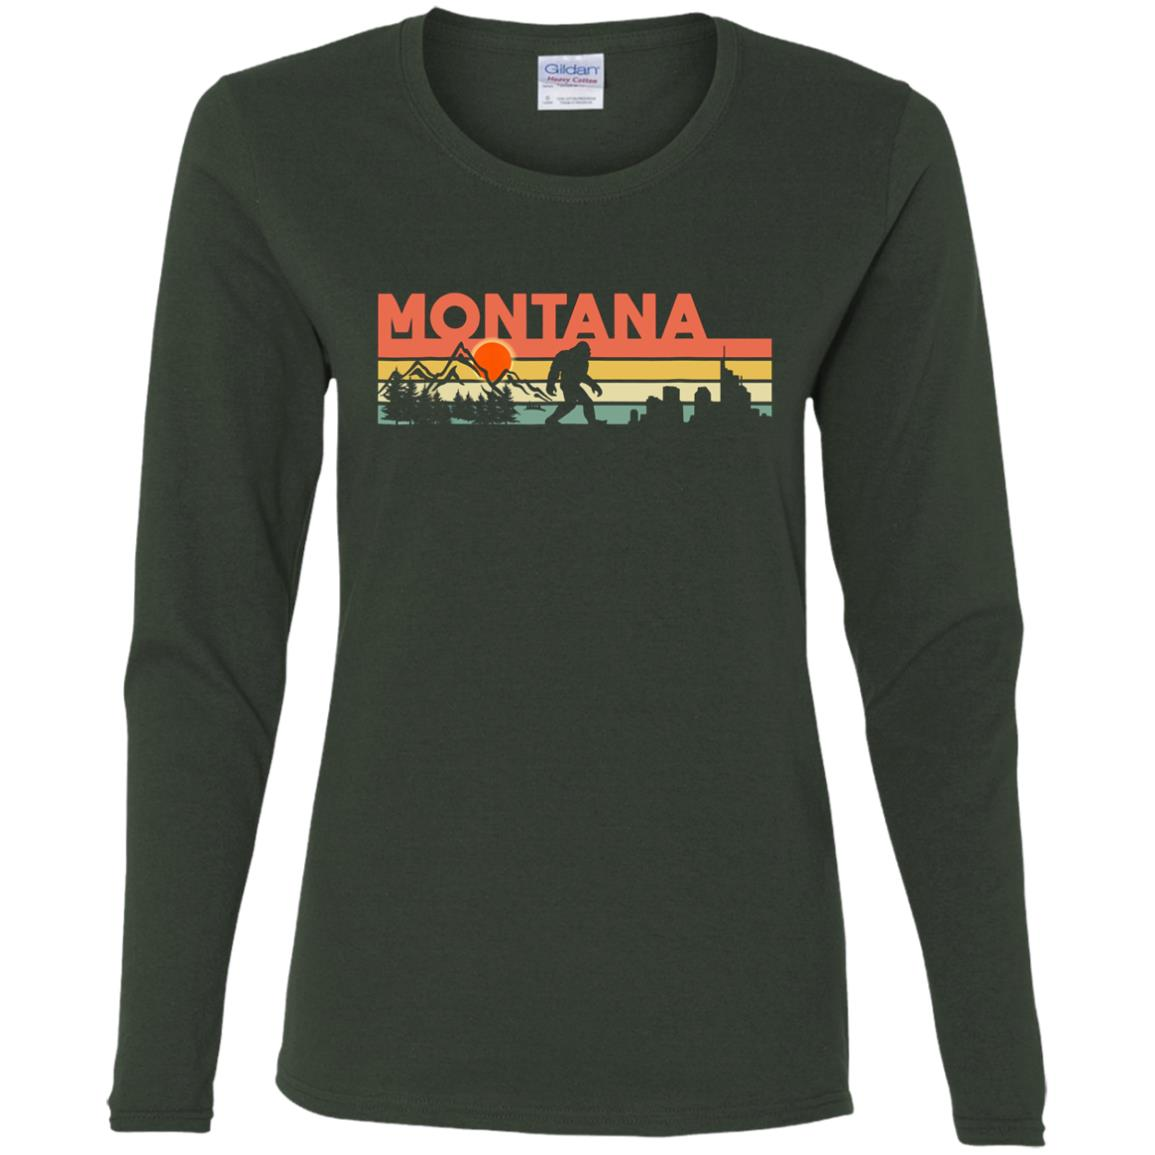 Vintage Montana Bigfoot Silhouette Sun – Believe! Women Long Sleeve T-Shirt